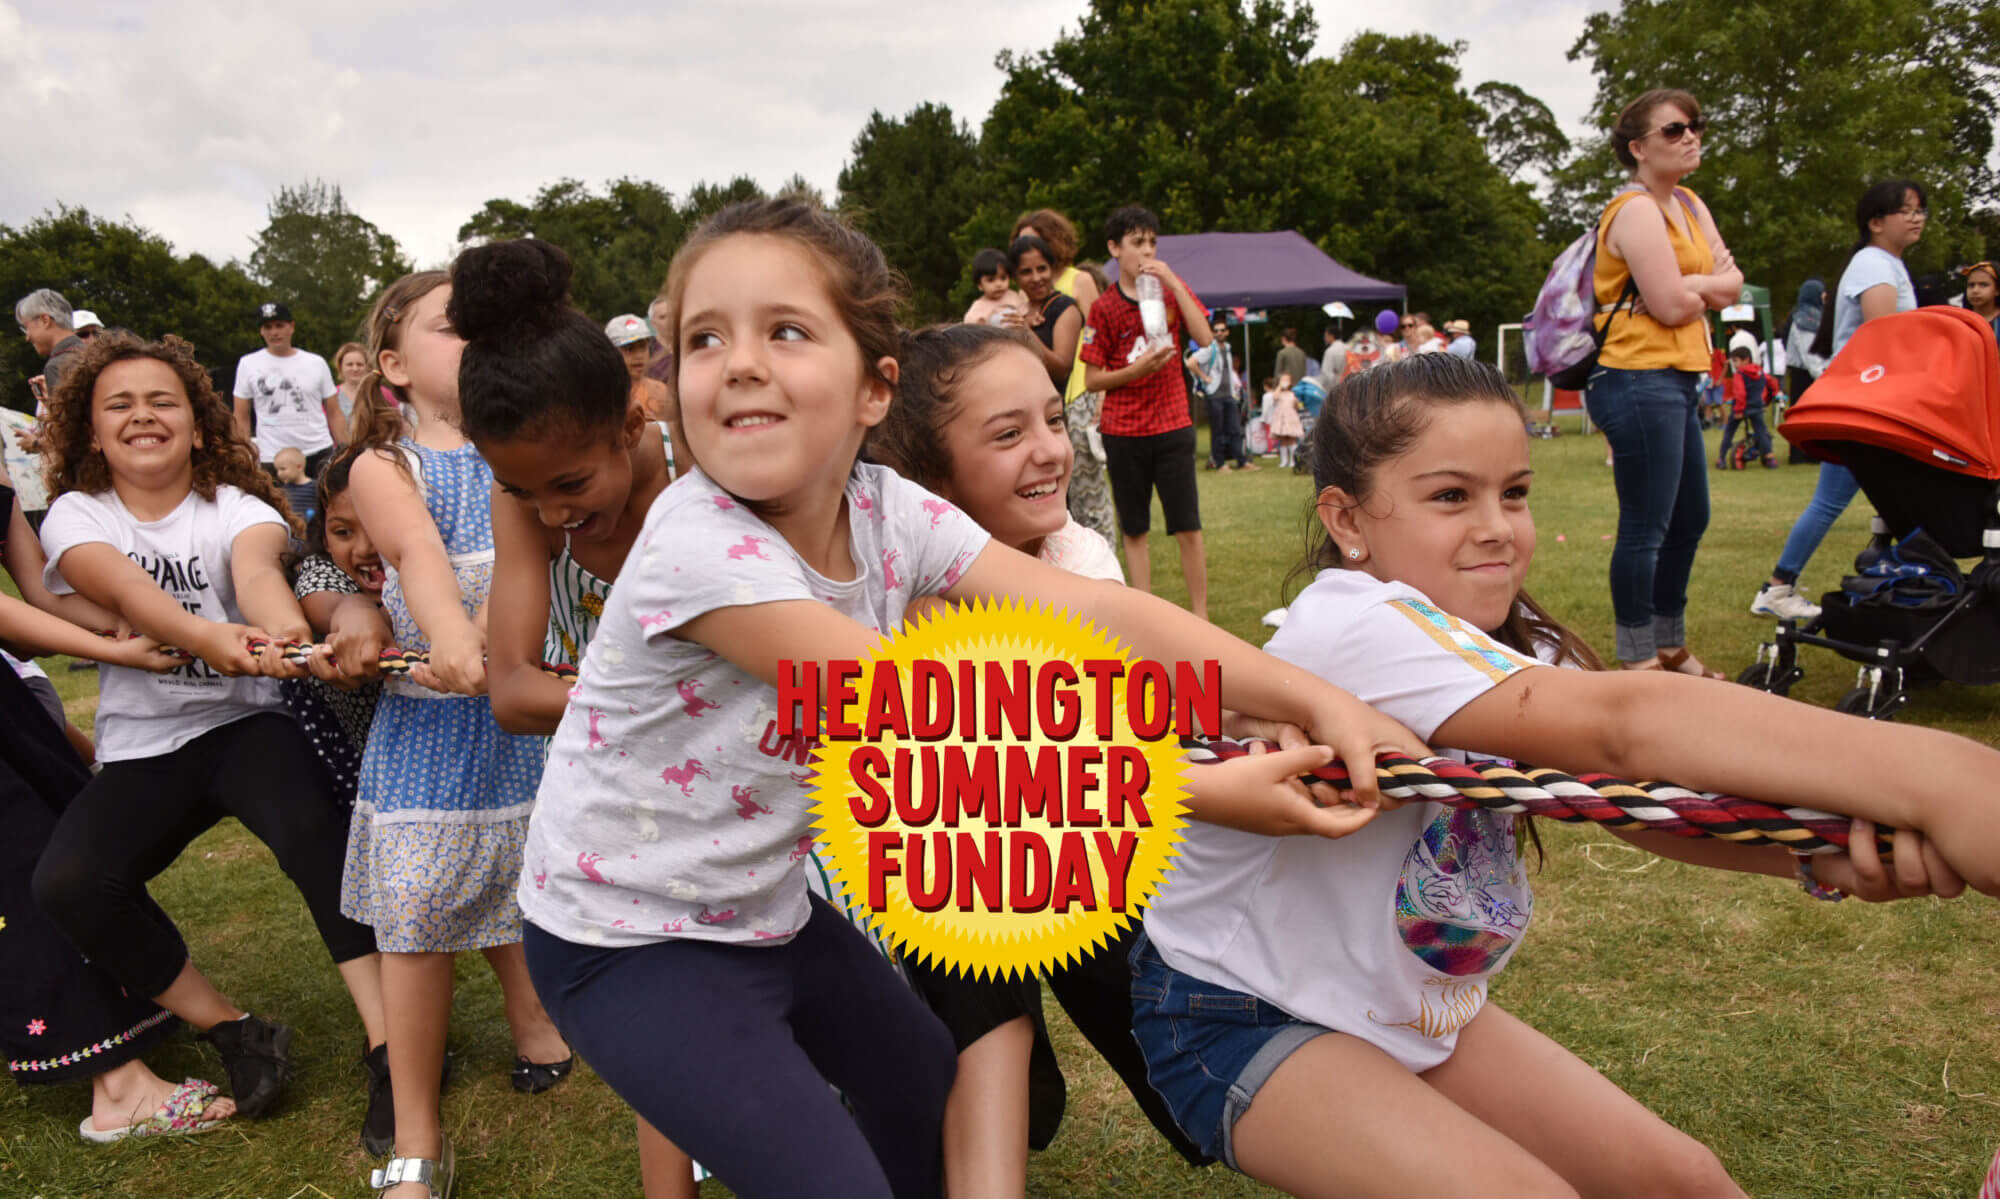 Headington Summer Funday